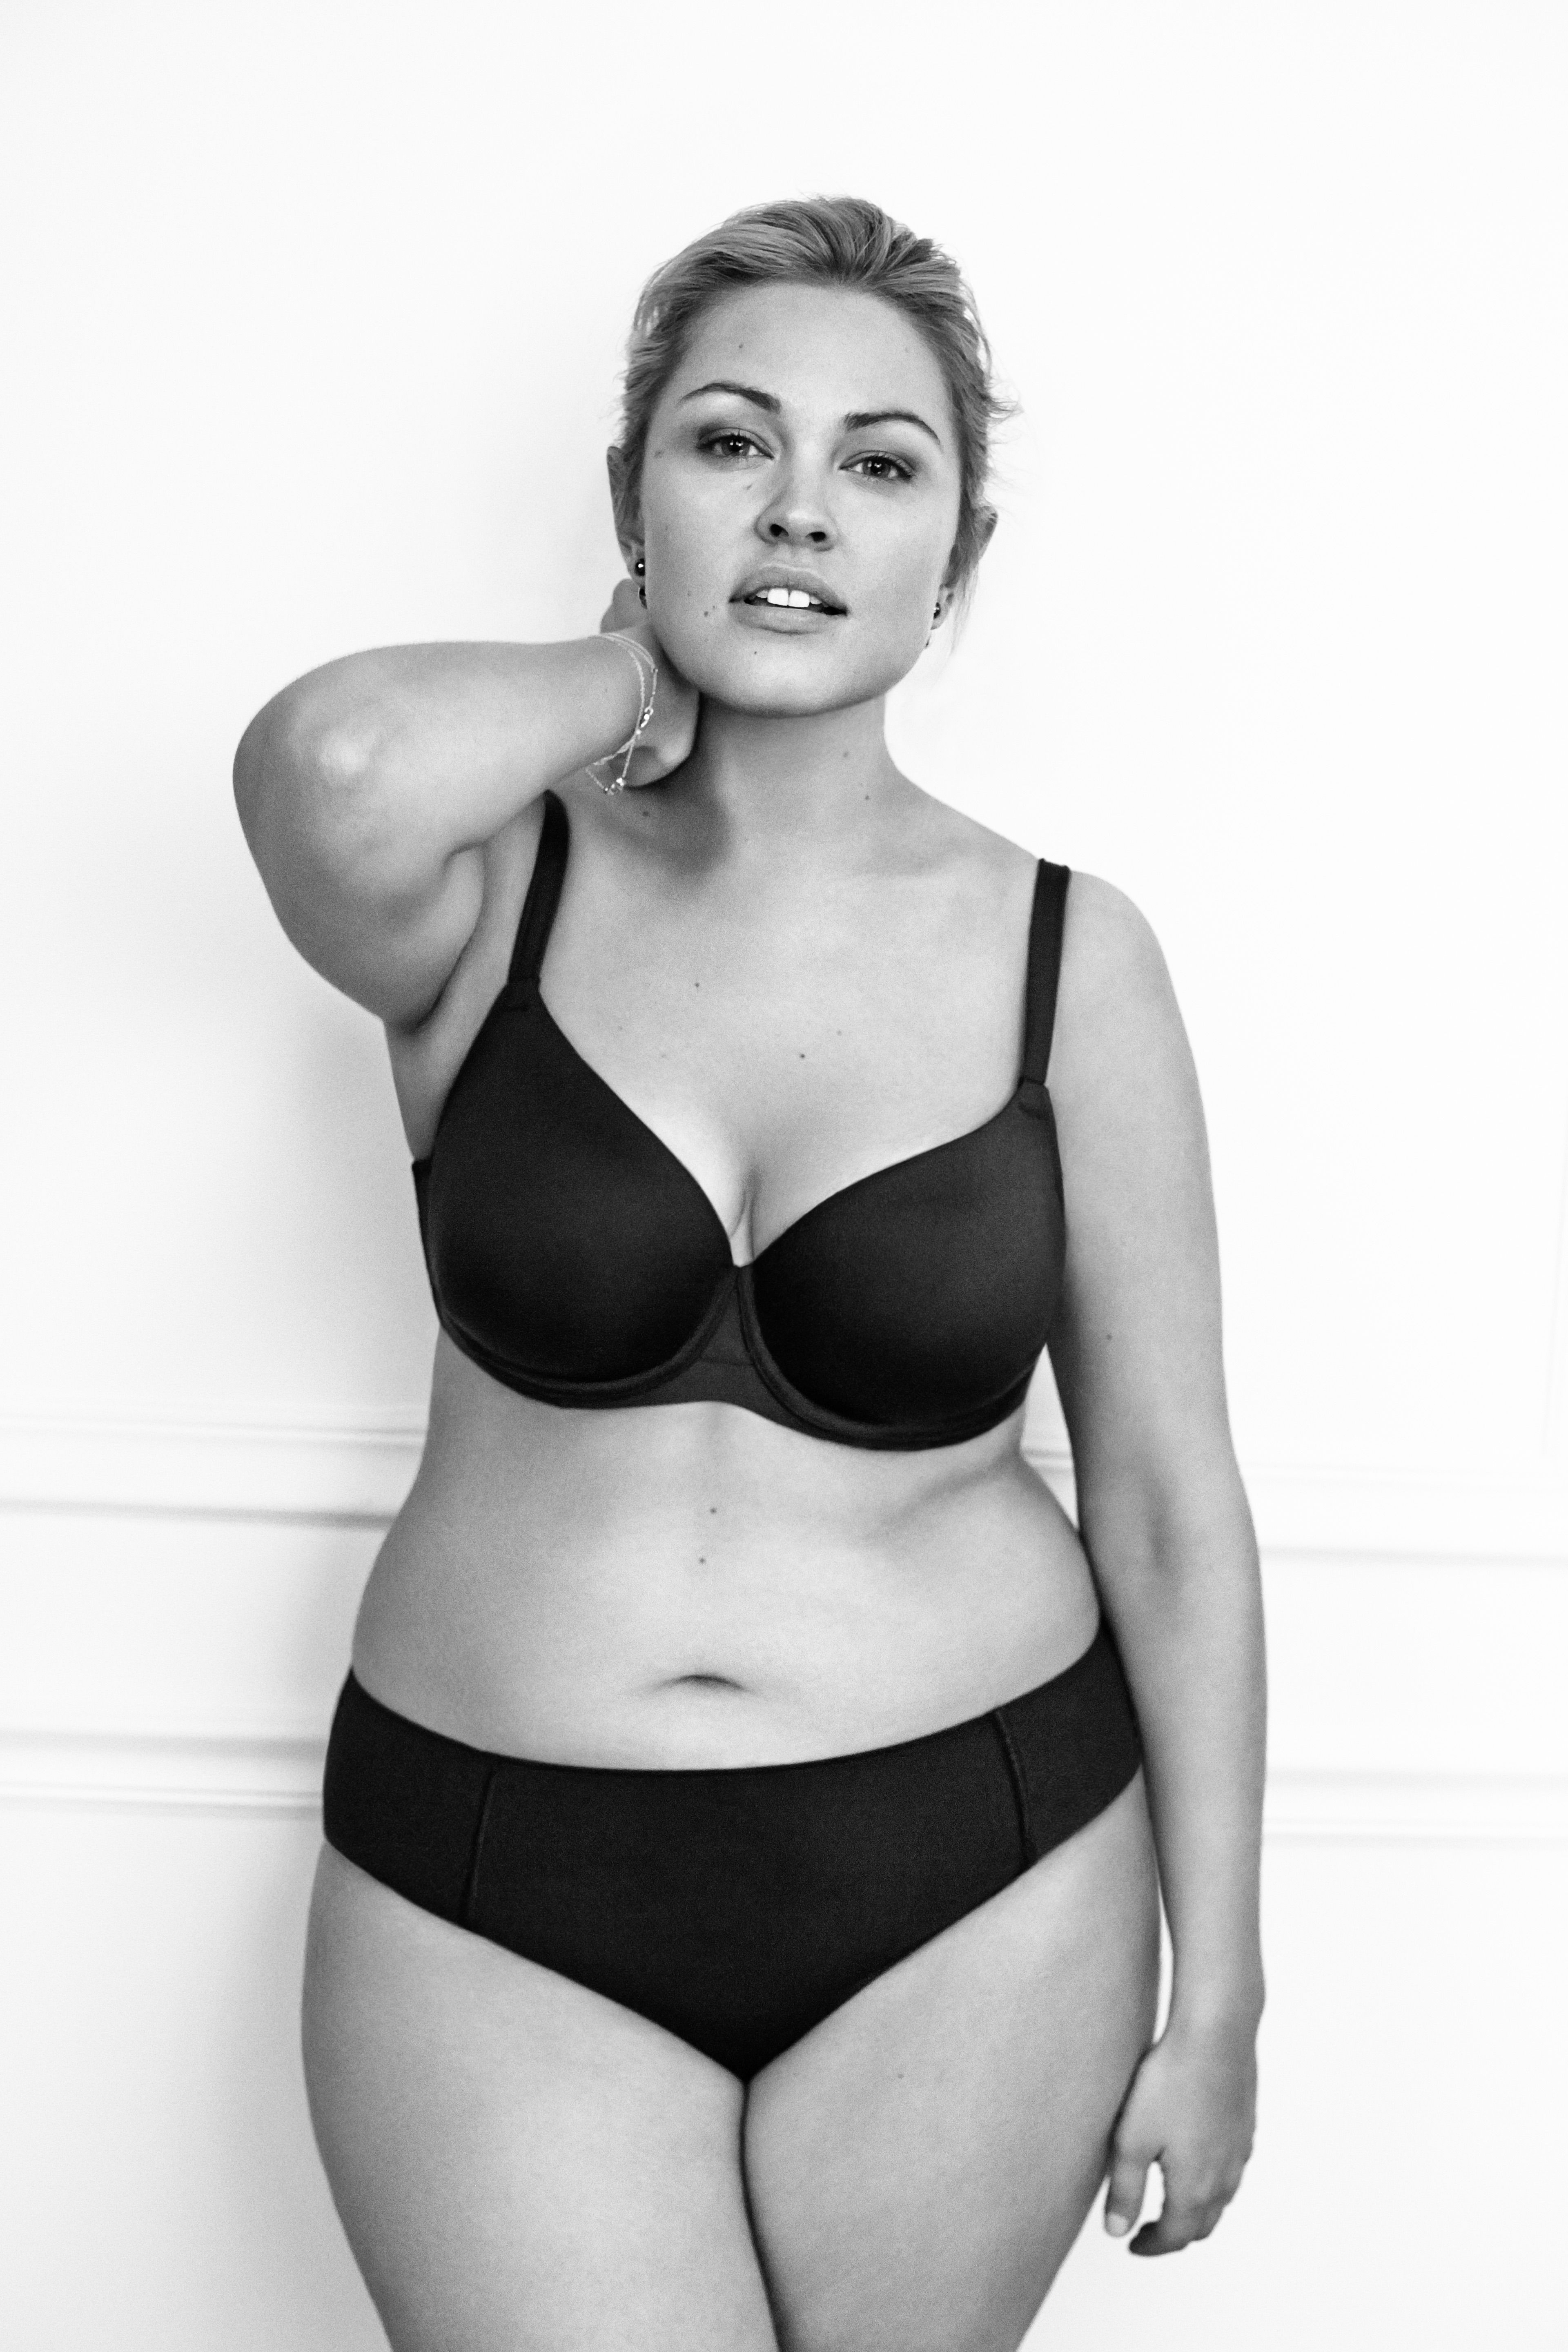 Get fast, free shipping with Amazon PrimeShop Best Sellers· Read Ratings & Reviews· Deals of the Day· Fast ShippingBrands: Lane Bryant, Roamans, Lock and Love and more.